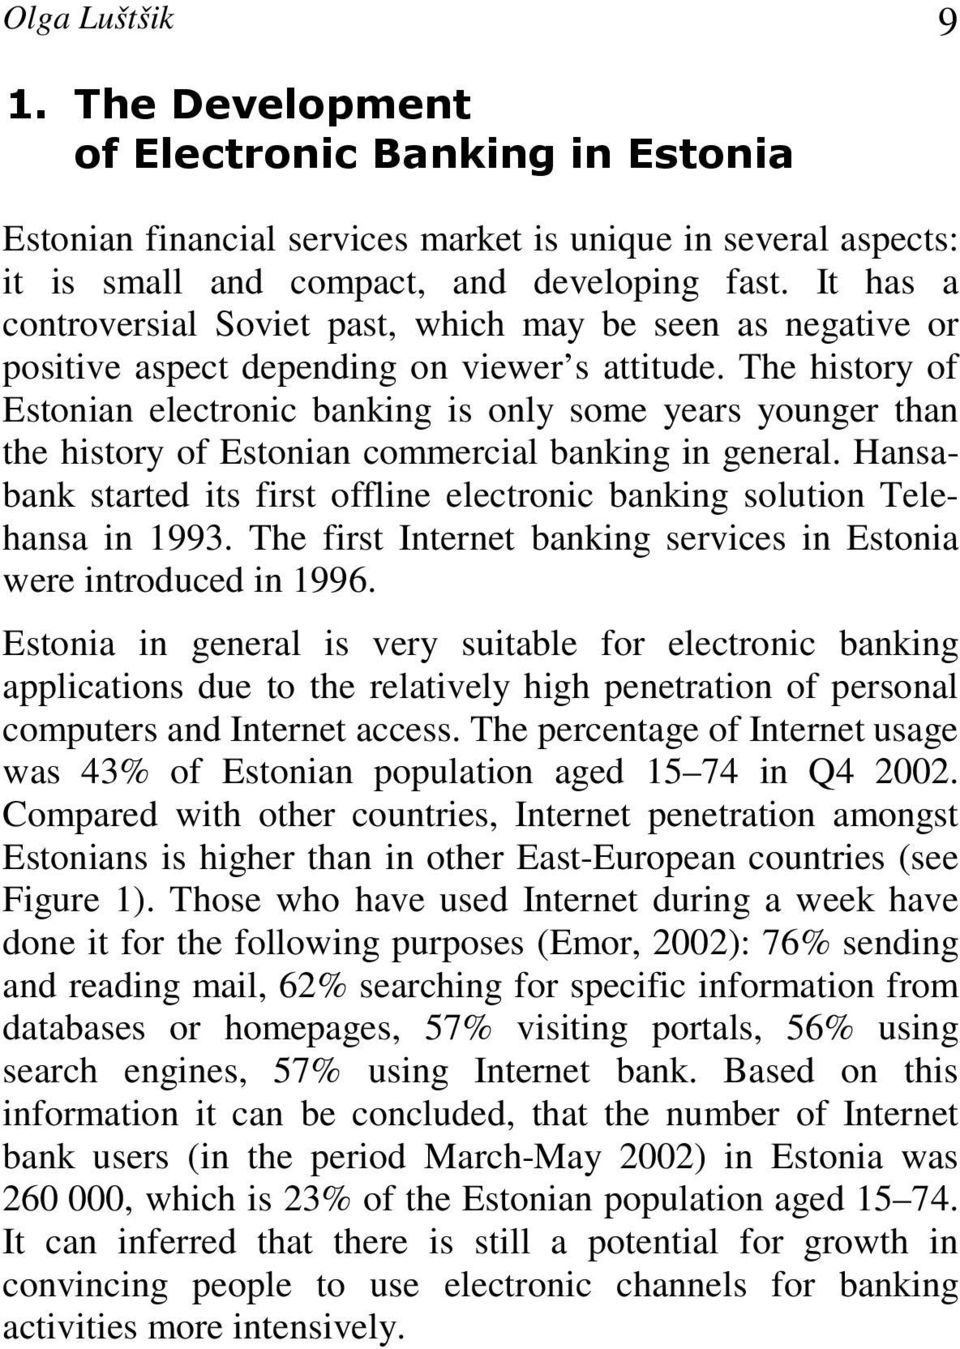 The history of Estonian electronic banking is only some years younger than the history of Estonian commercial banking in general.